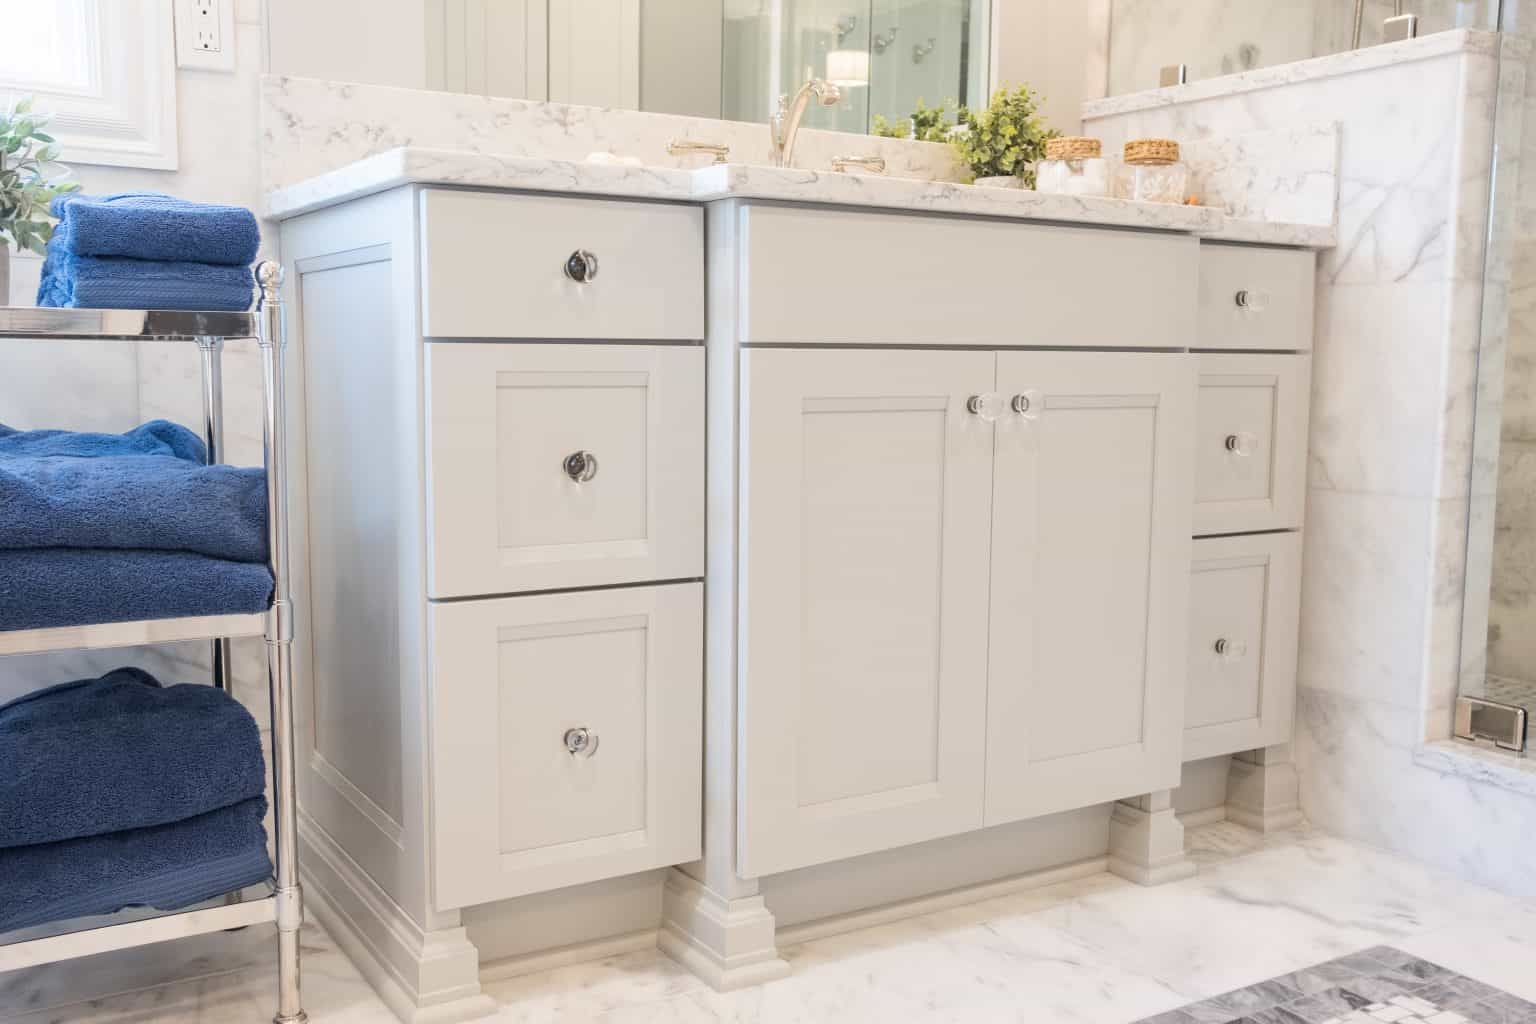 Bathroom Gallery | Standard Kitchen and Bath | Smoke and Mirrors ...